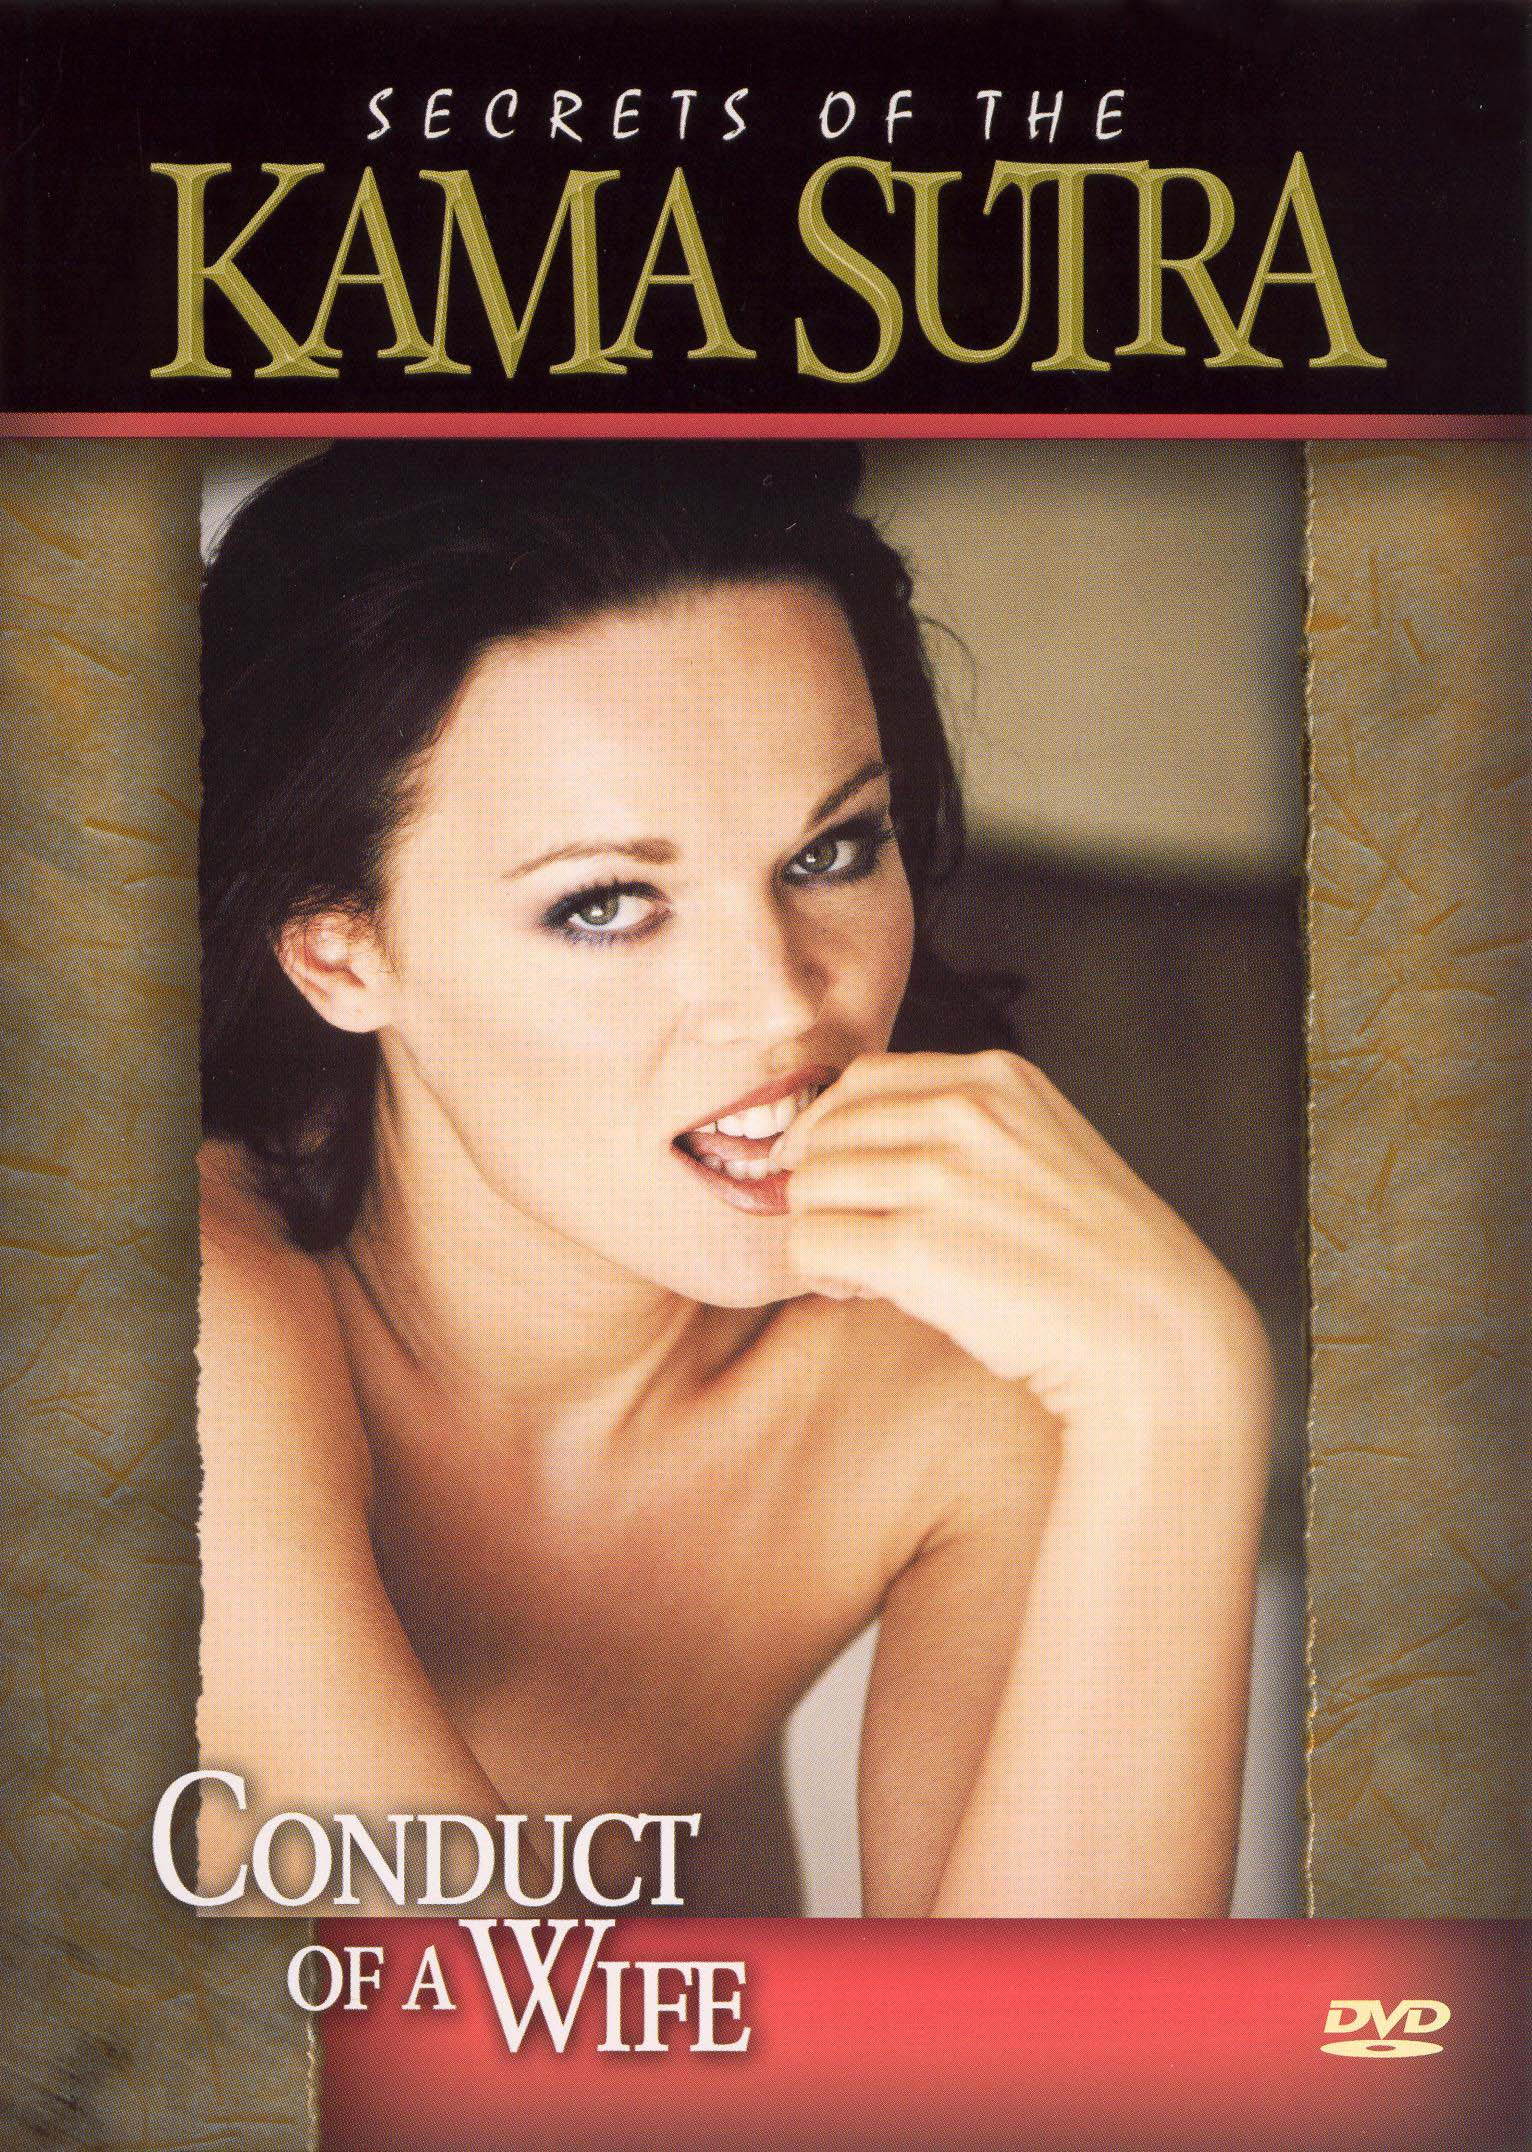 Secrets of the Kama Sutra: Conduct of a Wife